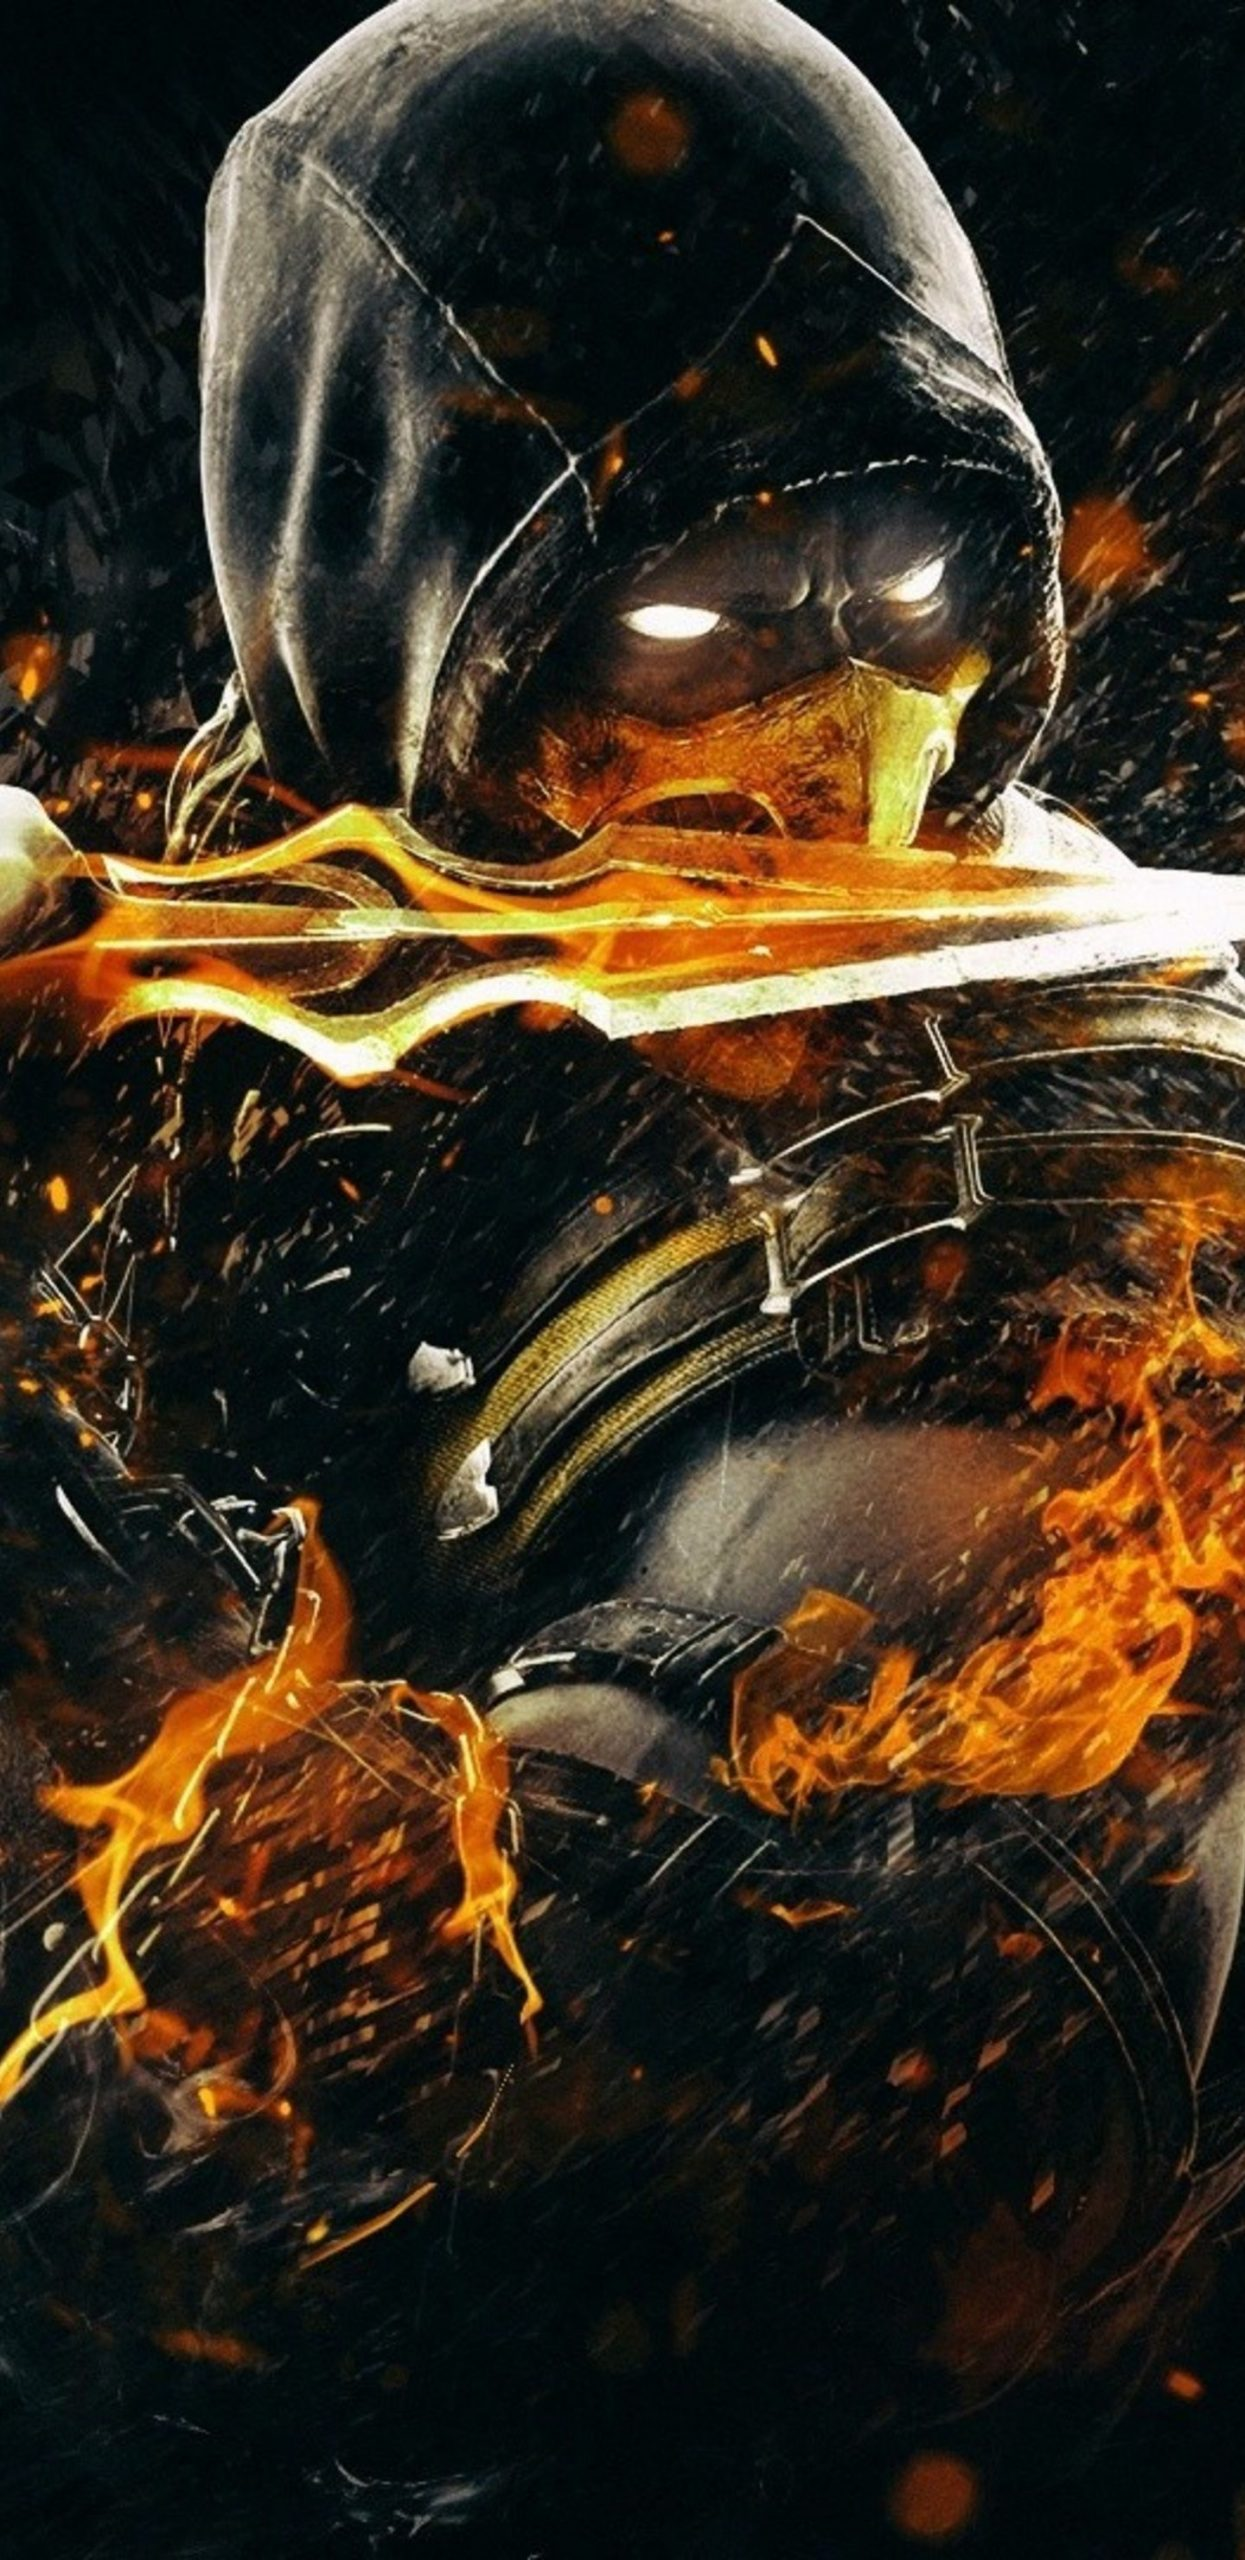 Scorpion Mortal Kombat Video Game Wallpapers